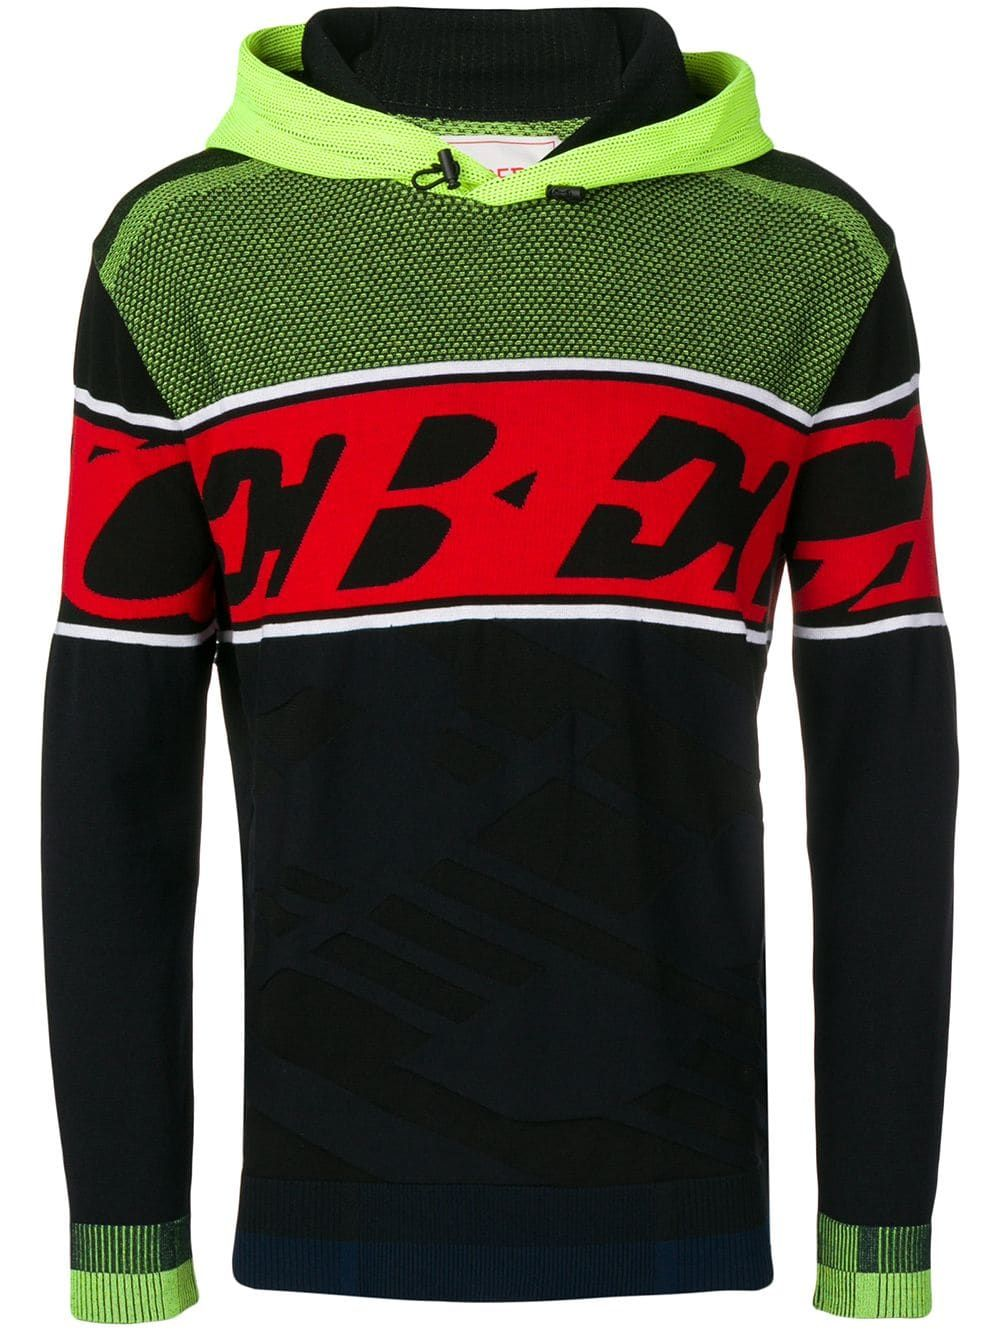 ba374f16250 Men's Boston Celtics Ugly Sweater   Products   Christmas sweaters ...